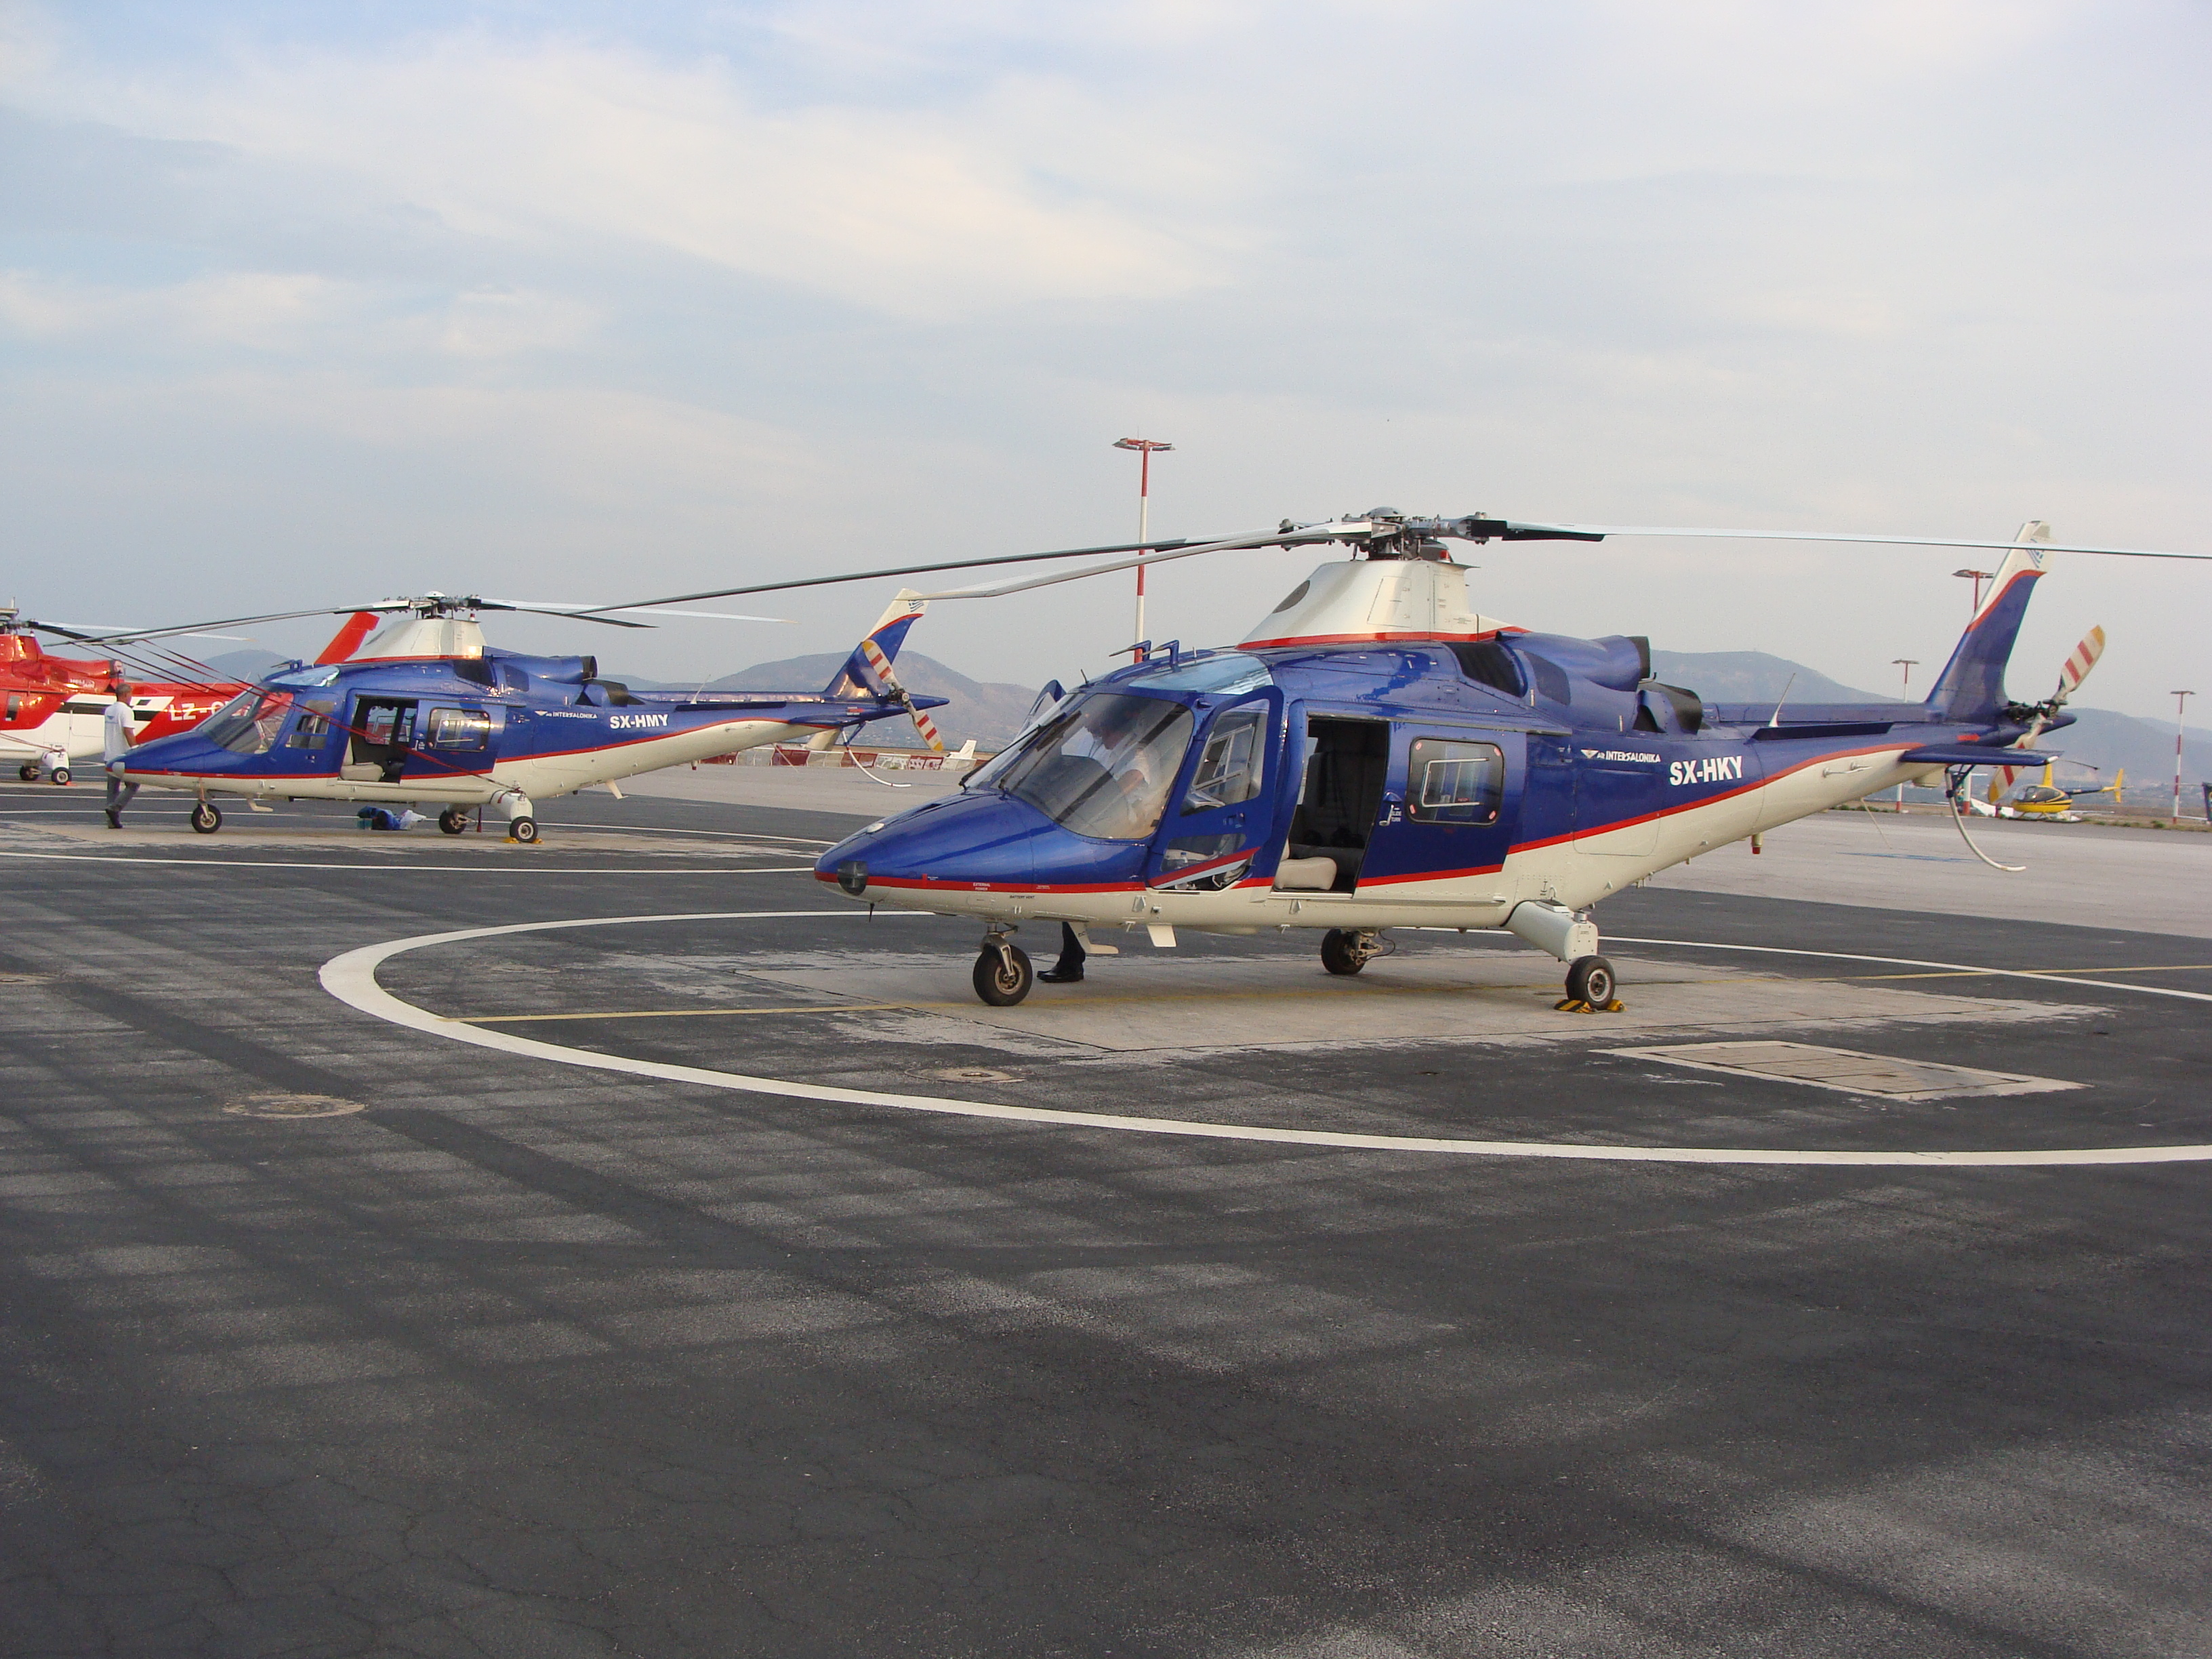 VIP Air Intersalonika Helicopter Fleet - AS355N